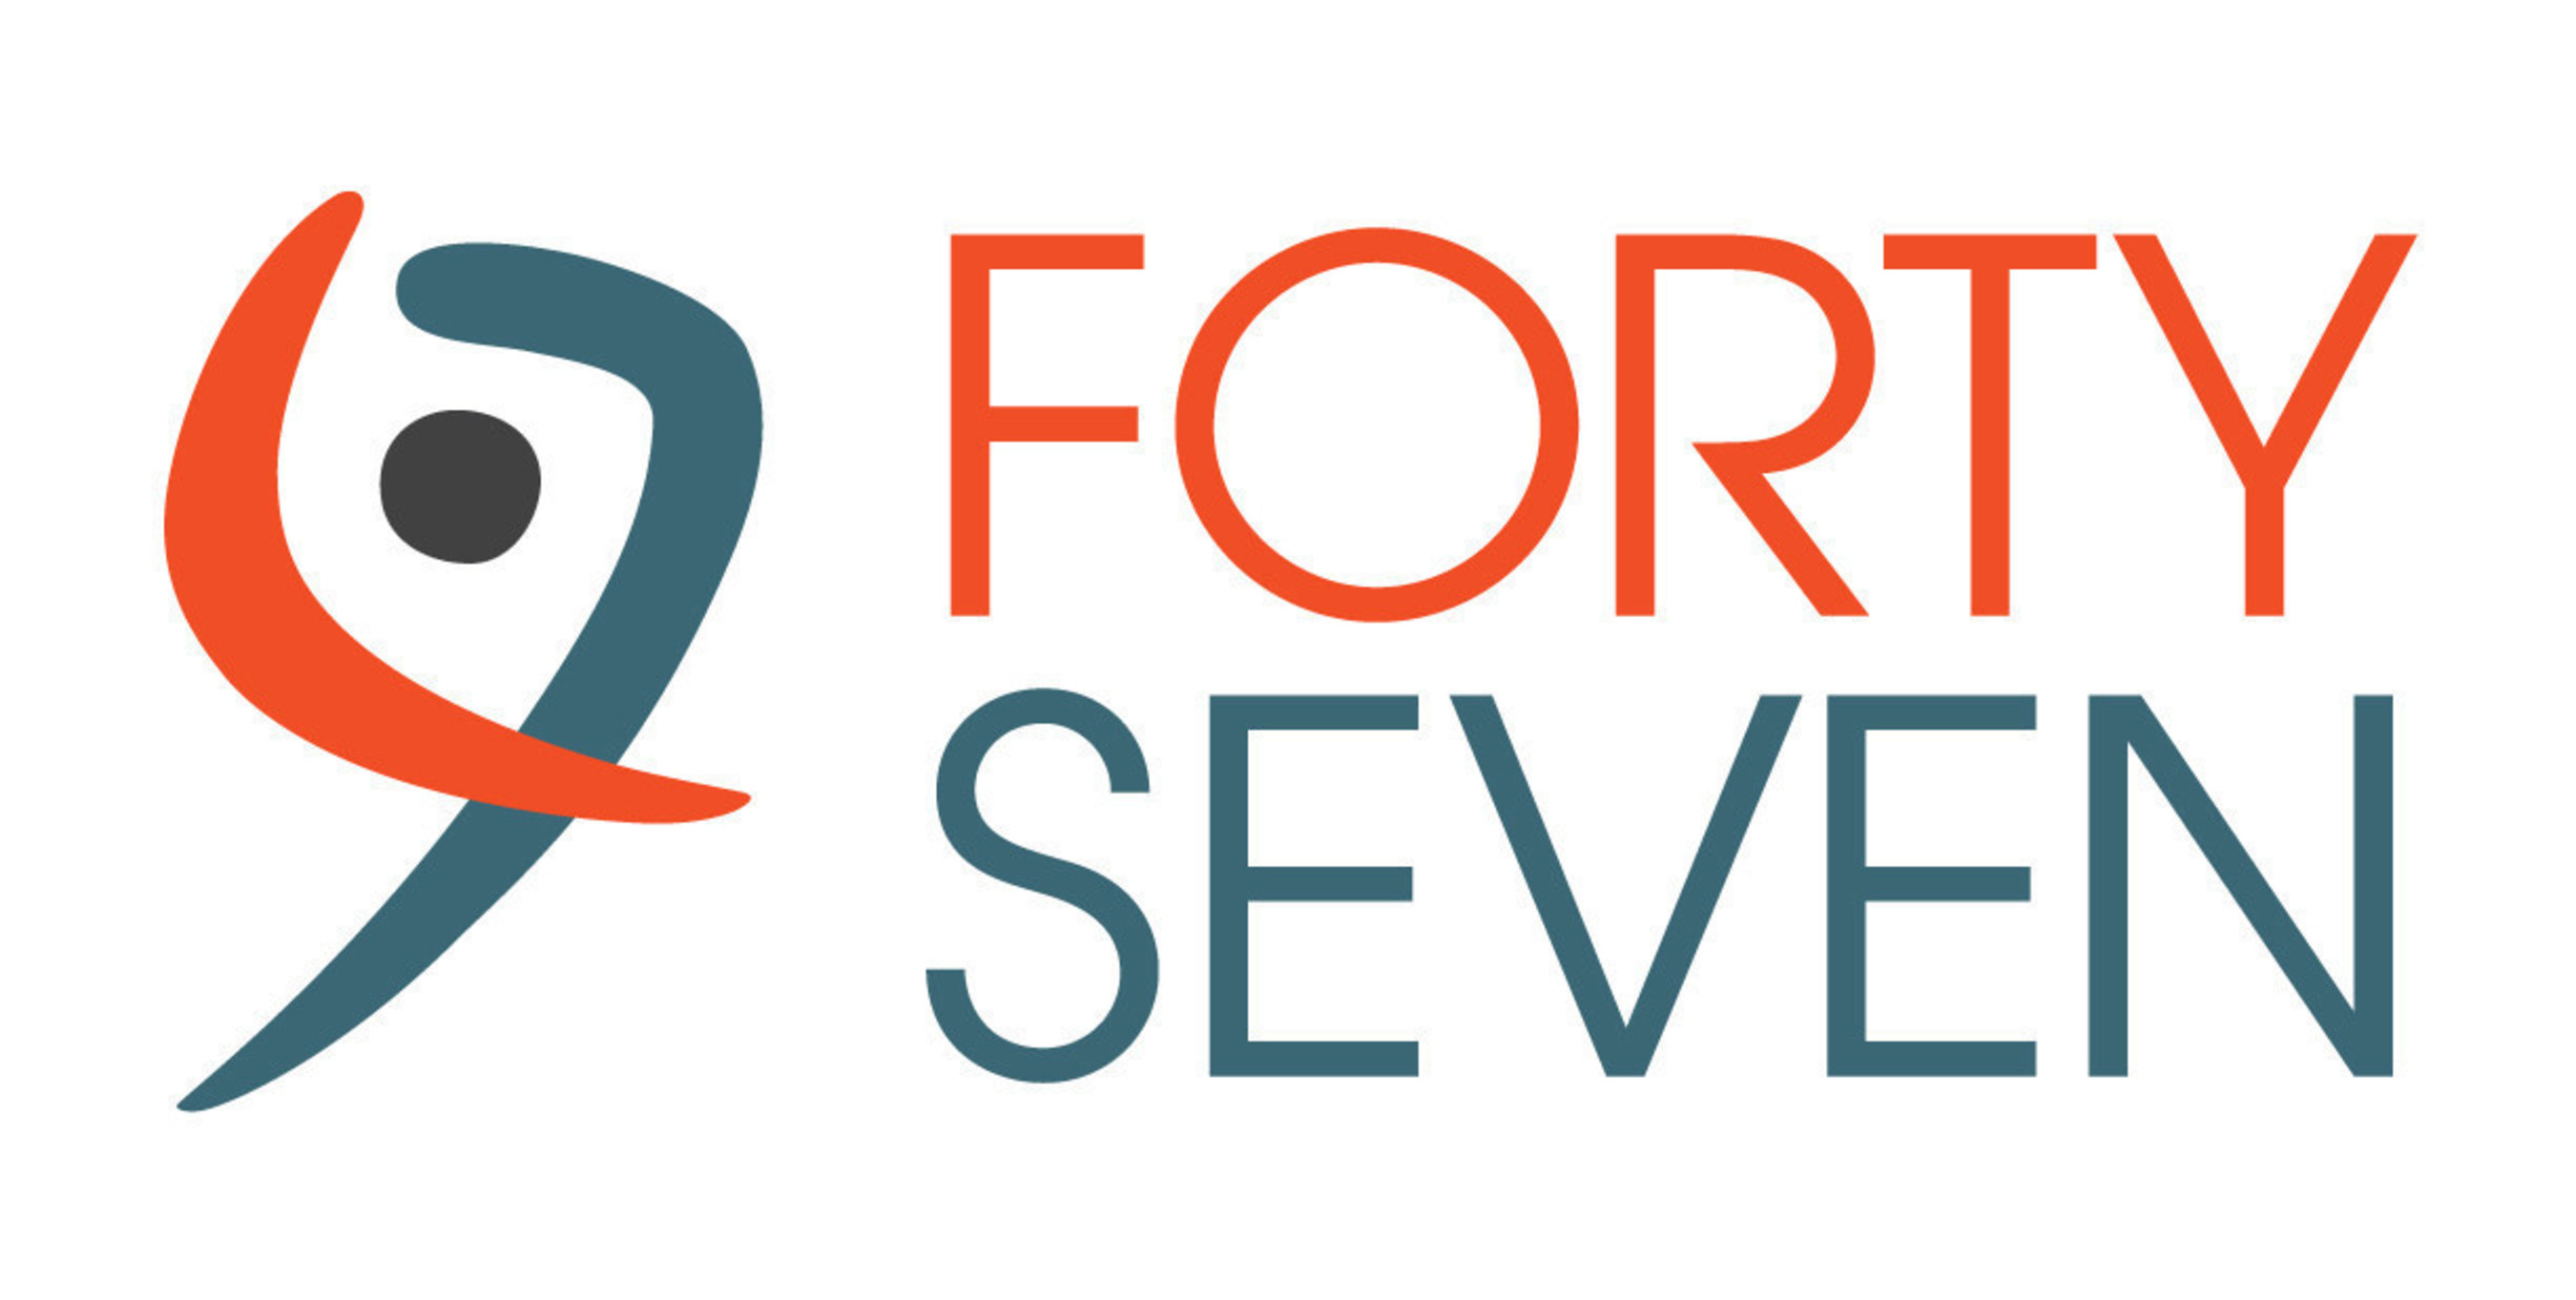 """Forty Seven Inc. is a clinical-stage immuno-oncology company that is developing therapies licensed from Stanford University targeting cancer immune evasion pathways. The lead program Hu5F9-G4 is a monoclonal antibody against the CD47 receptor, a """"don't eat me"""" signal that cancer cells commandeer to avoid being ingested by the immune system. This antibody is currently being evaluated in two Phase 1 clinical studies in patients with solid tumors and in patients with acute myeloid leukemia."""